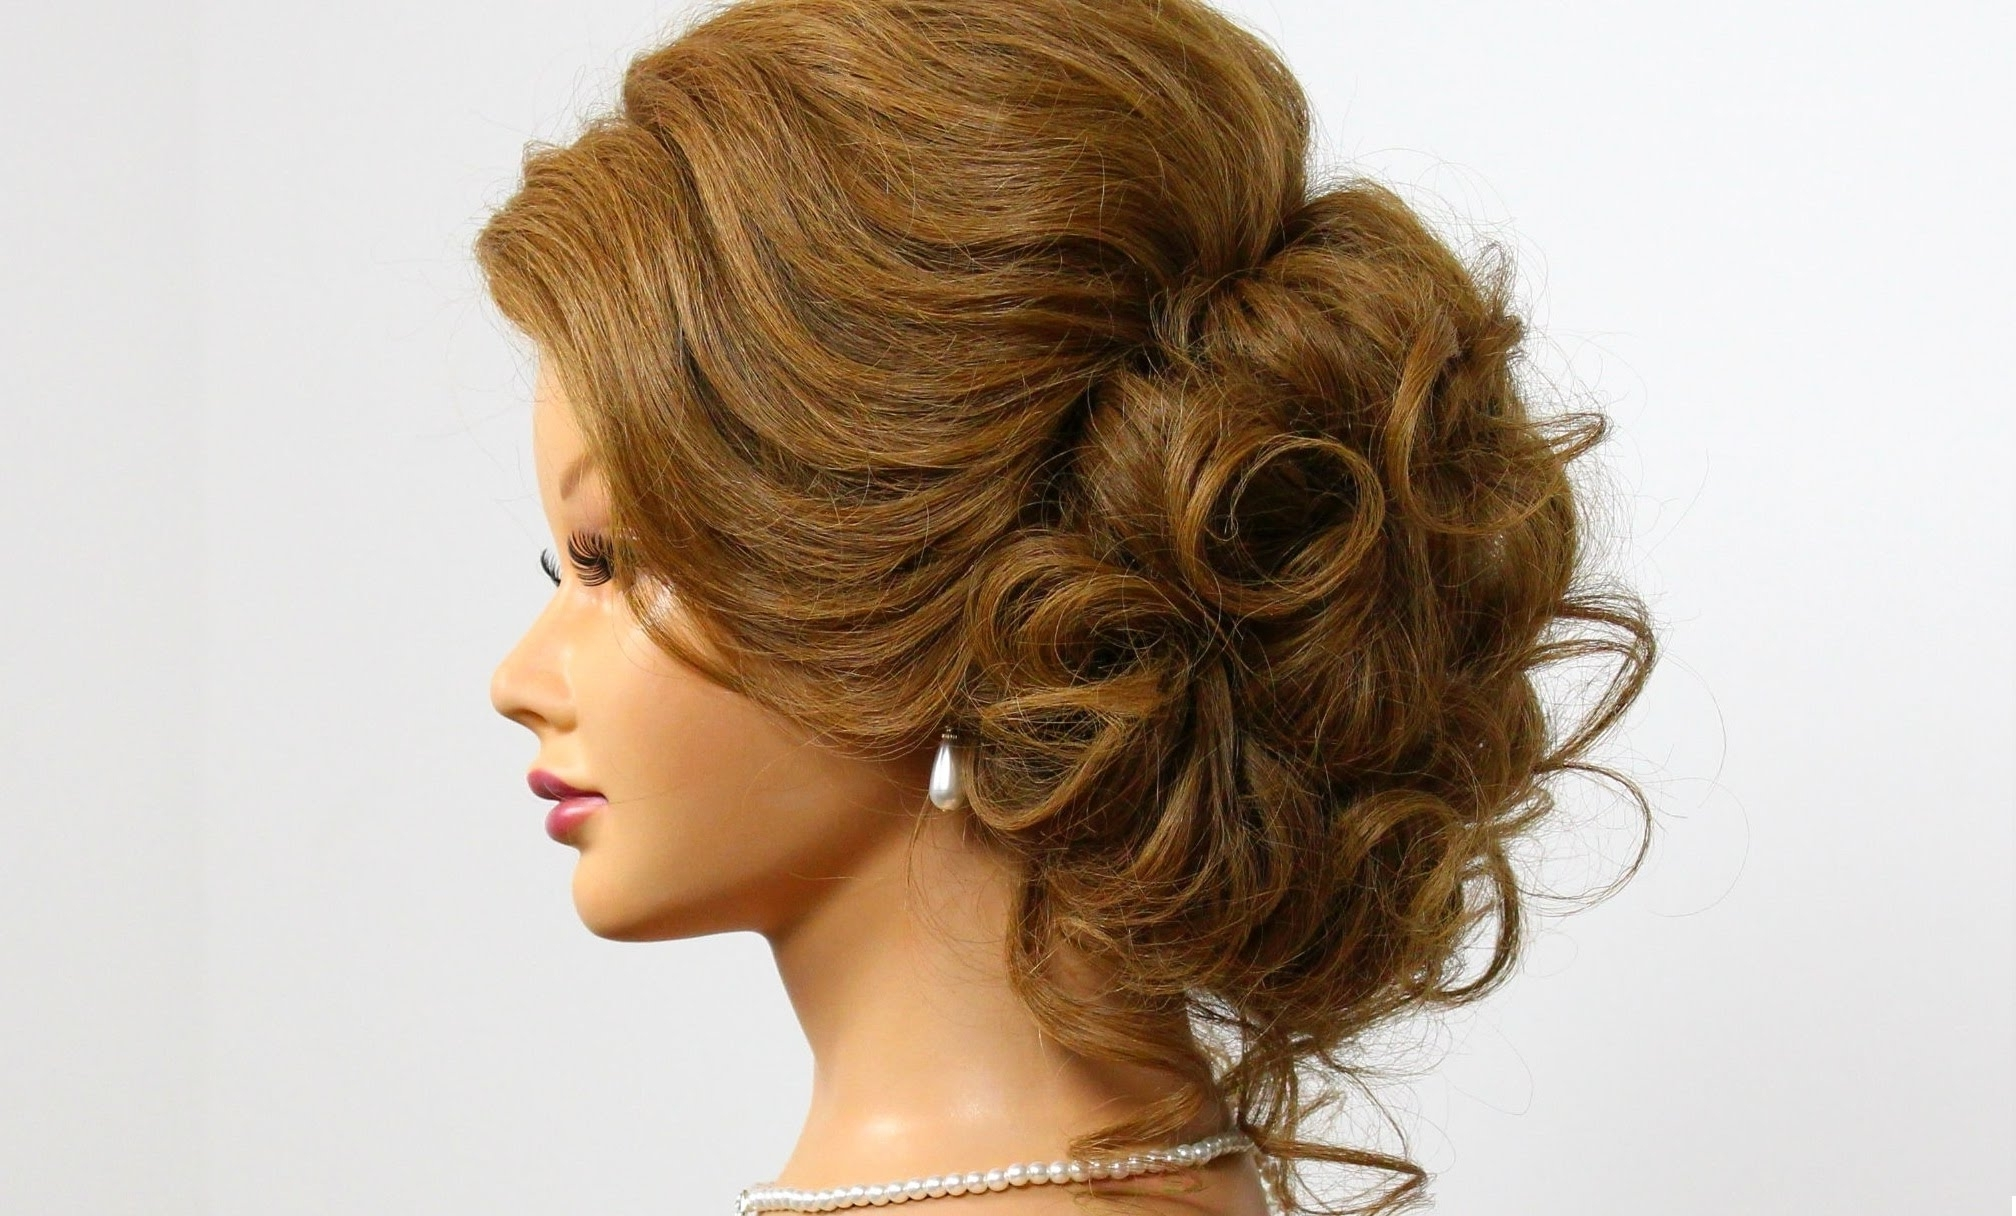 Photo Gallery Of Prom Updo Hairstyles For Medium Hair Viewing 3 Of